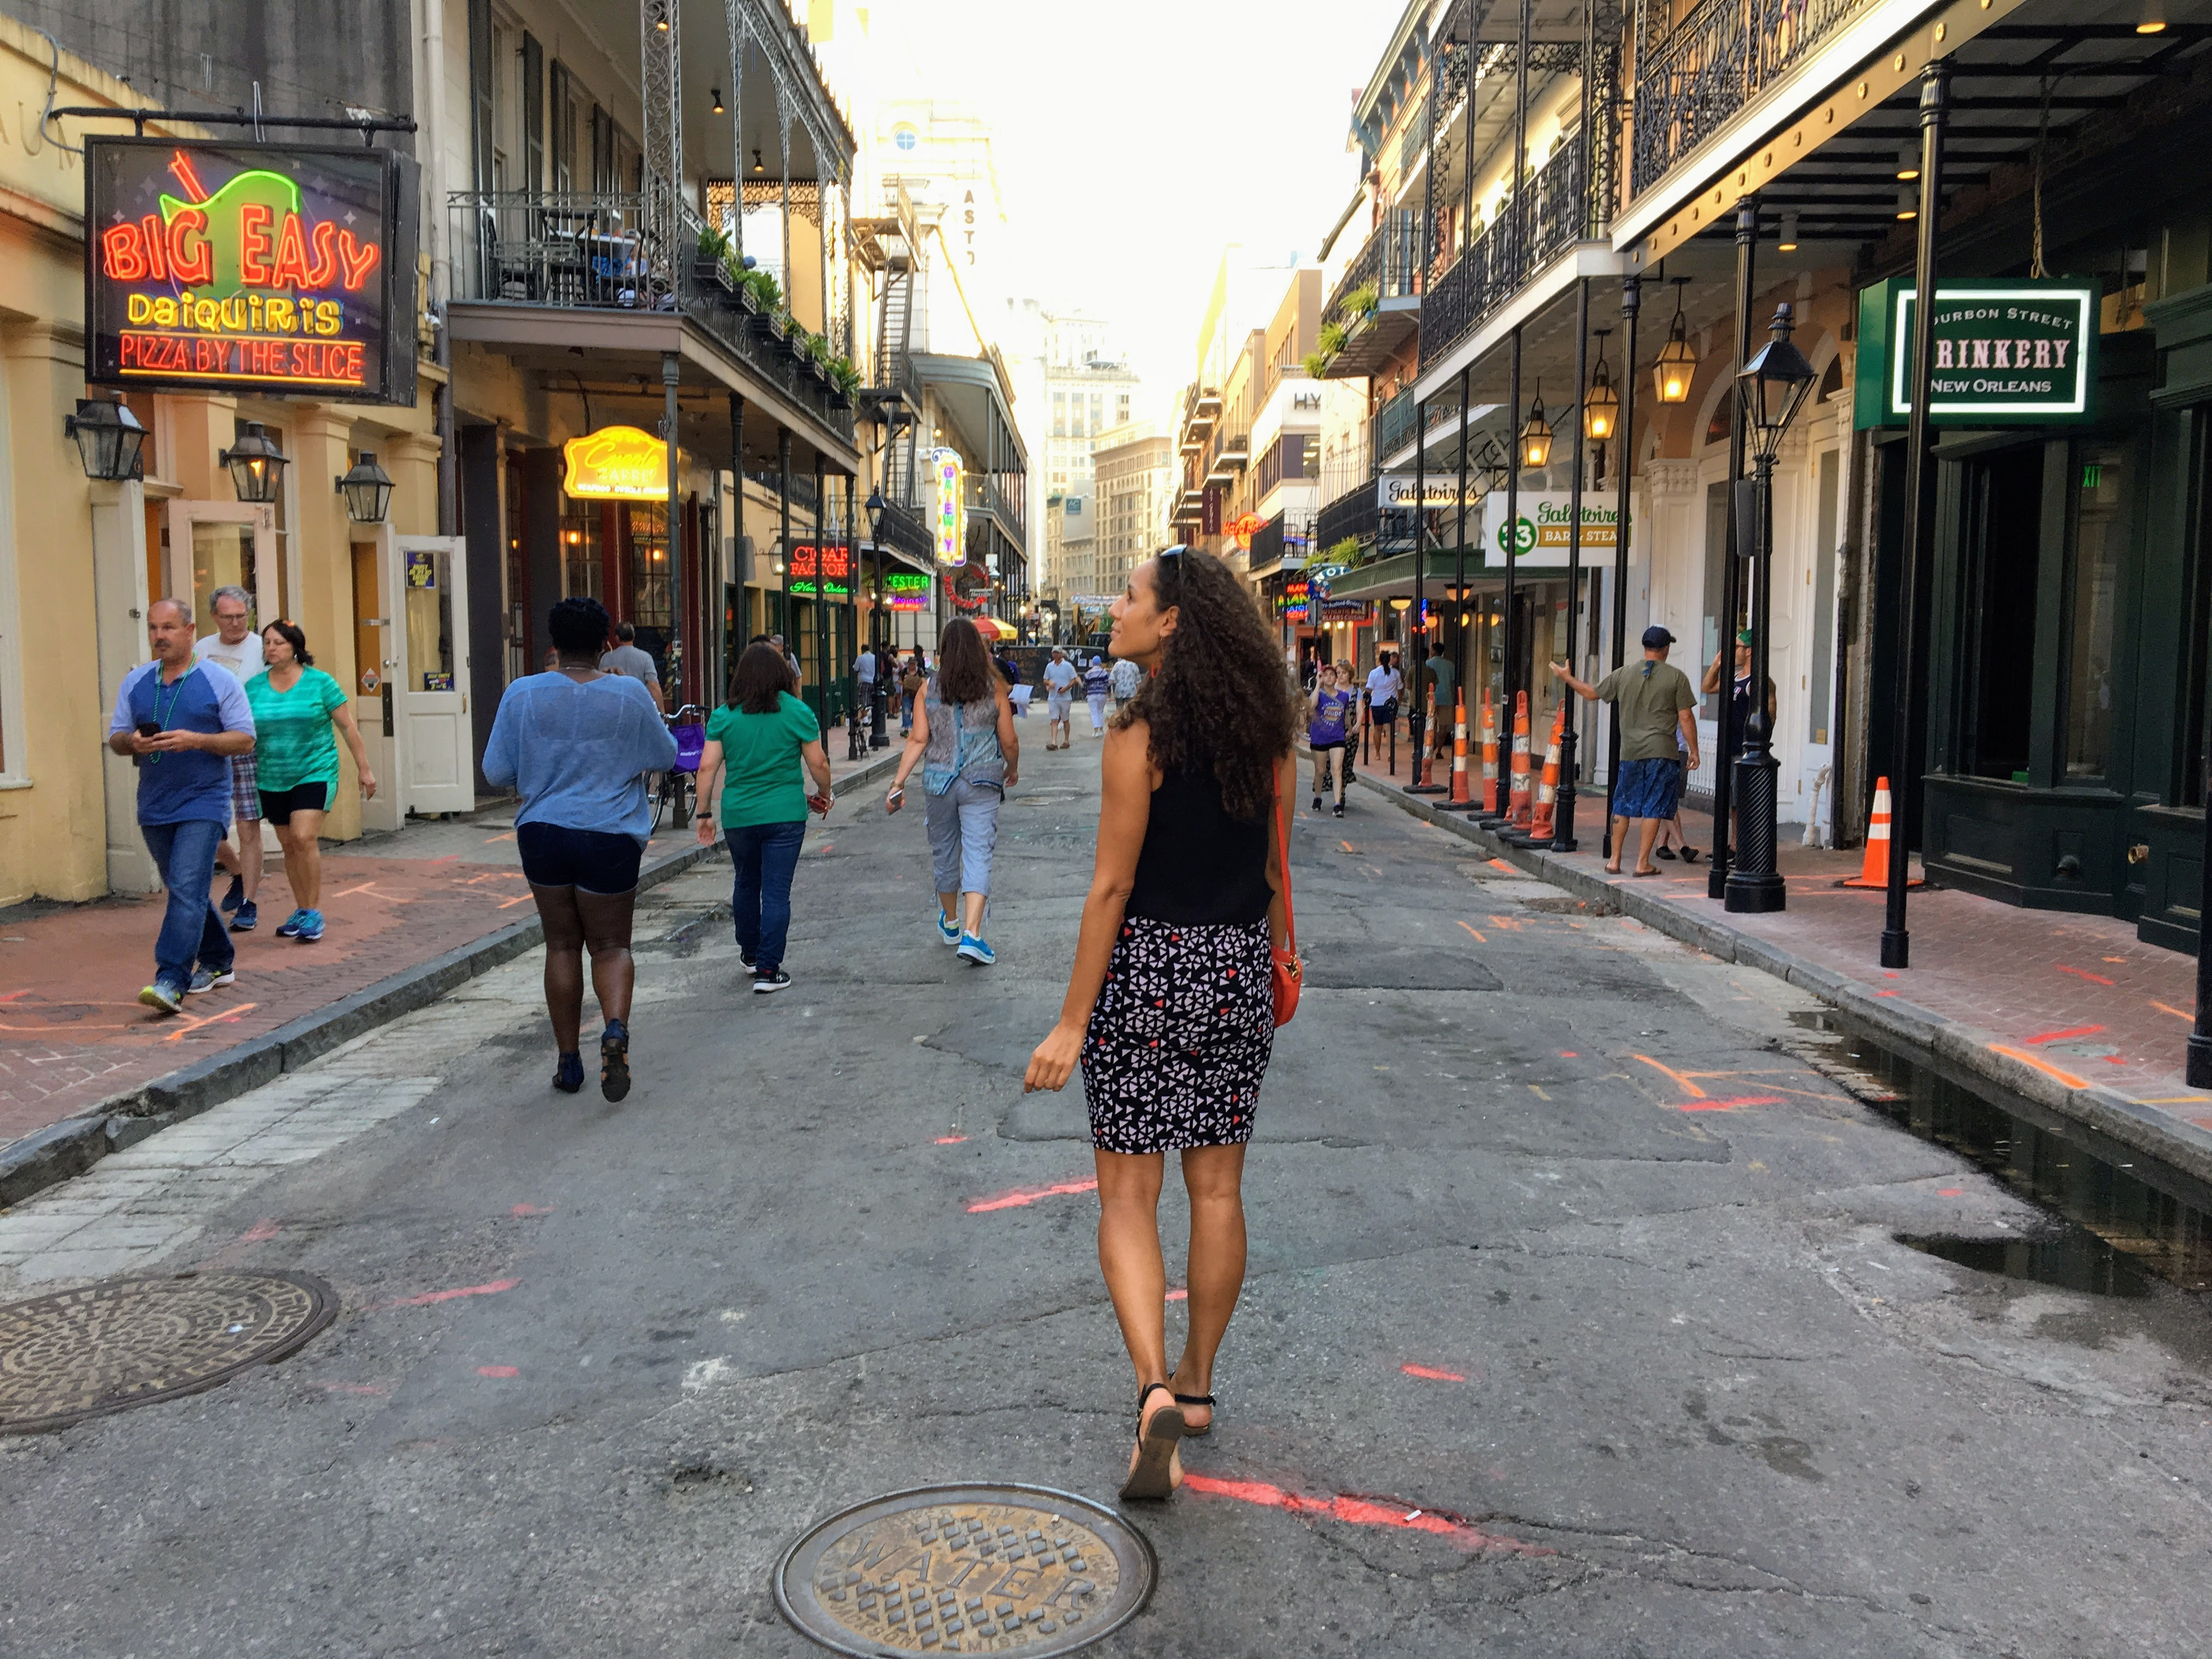 Walking through the French Quarter in New Orleans, Louisiana